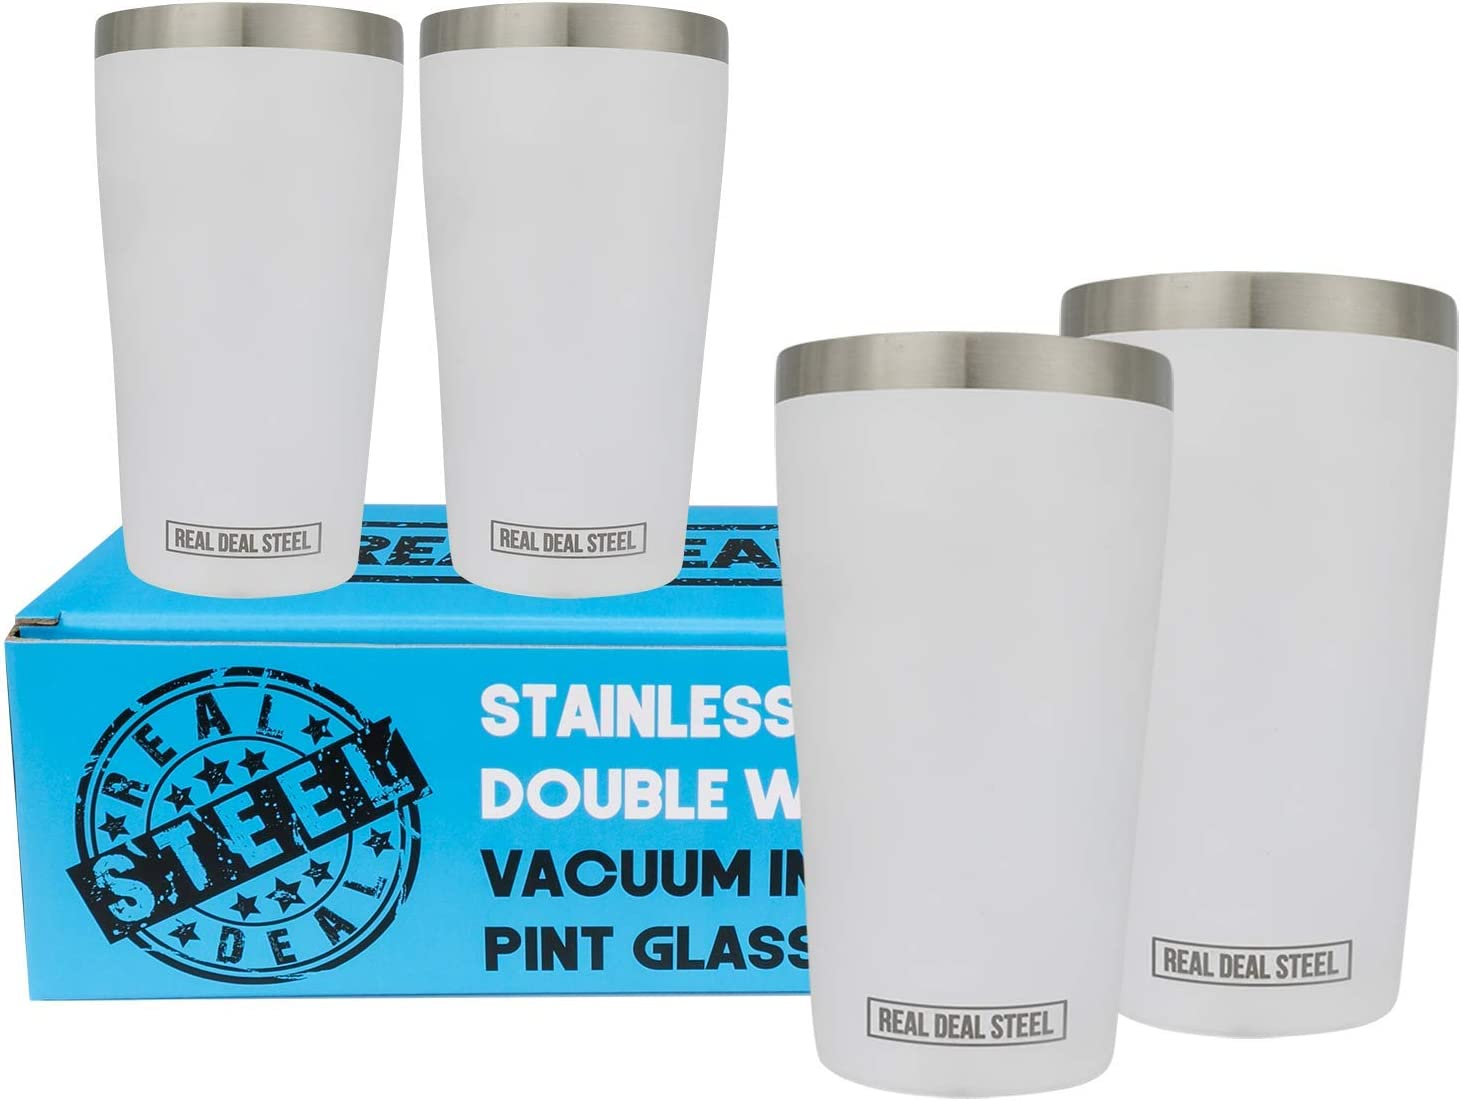 Stainless Steel Pint Glasses: Double Wall Vacuum Copper Insulated Metal Cups to Keep Drinks Cold or Hot - Rimless, Sweat Free Beer Tumbler for Cocktails, Coffee, Set of 4, 16 oz (White)